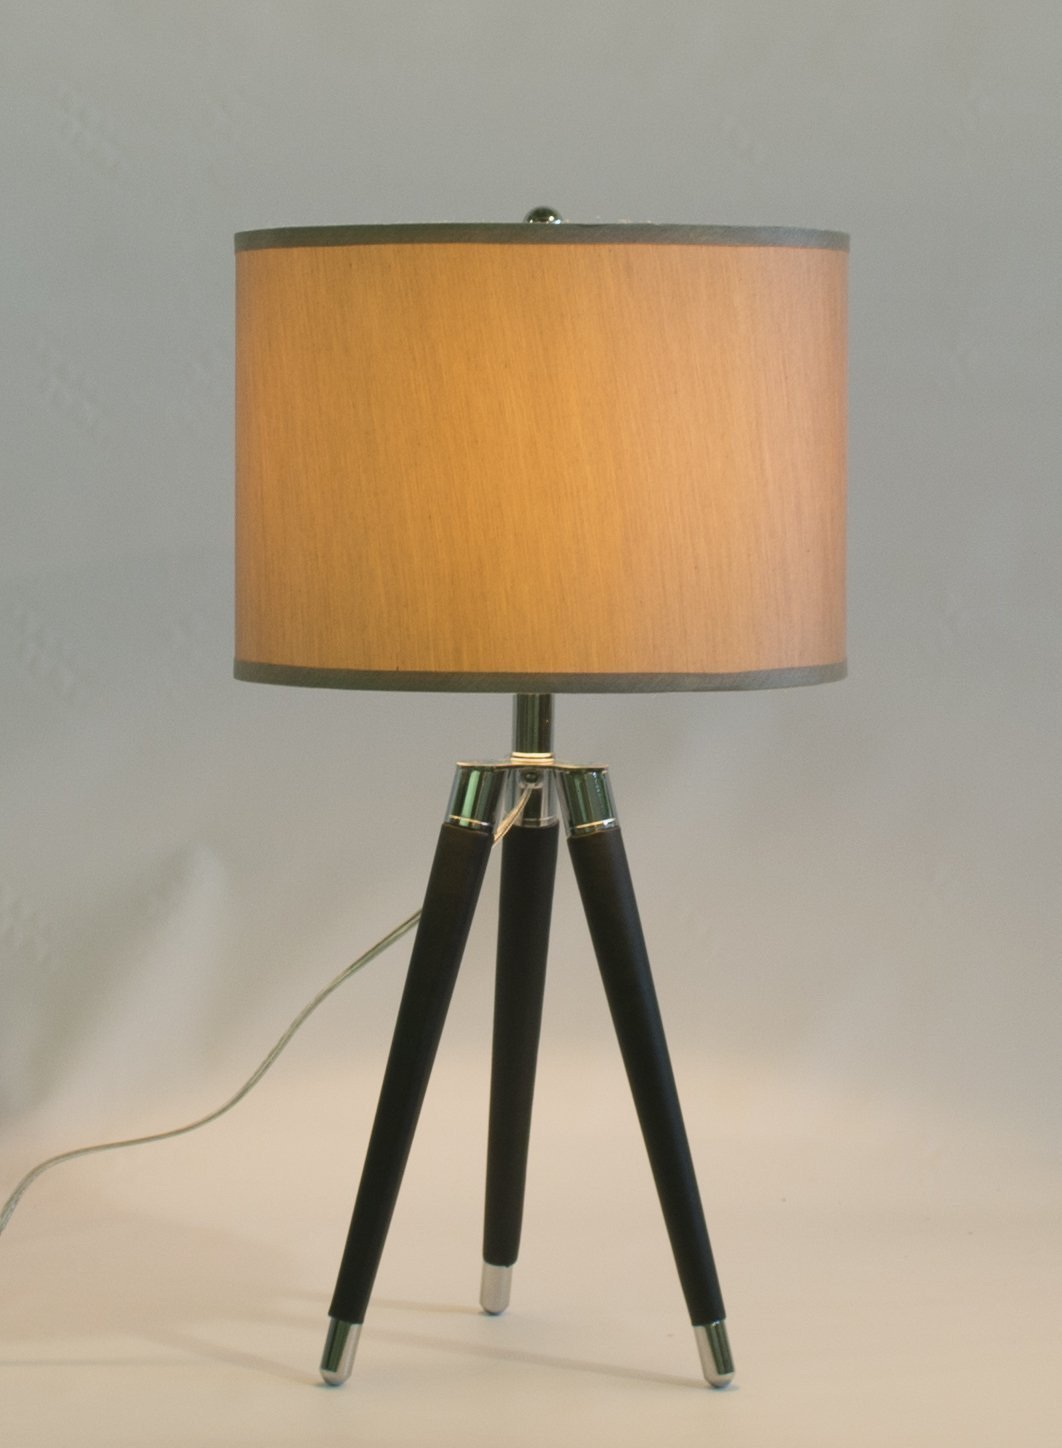 Black Mid Century Modern Tripod Leather Chrome Table Lamp With 14 Inch Champagne Drum Shade